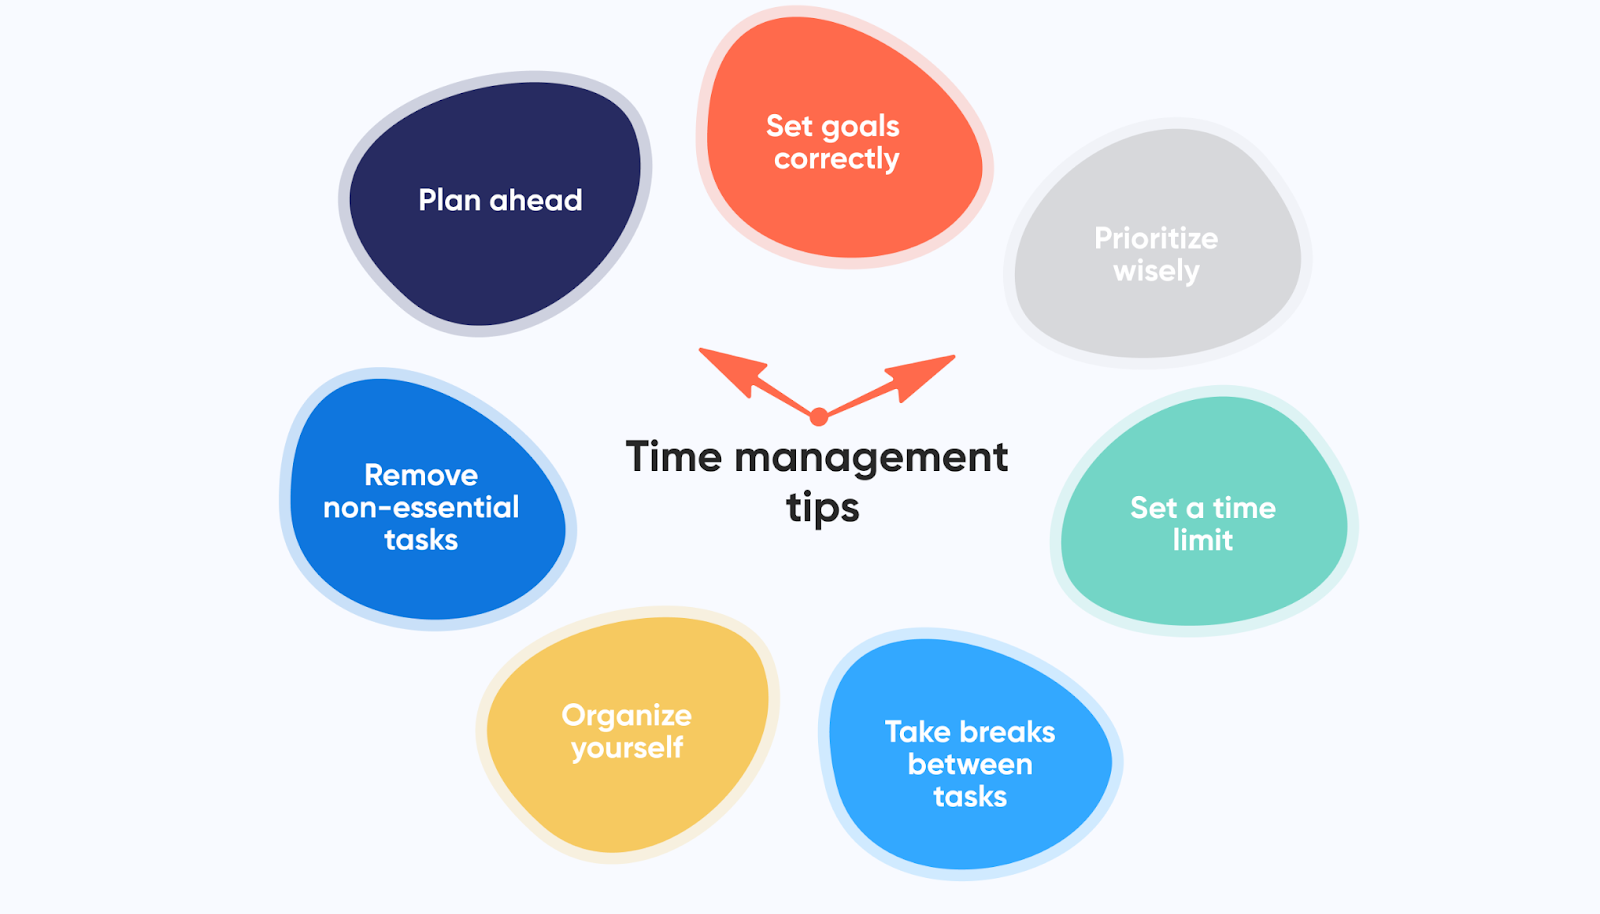 diagram-showing-the-various-steps-toward-efficient-and-effective-time-management-full-potential